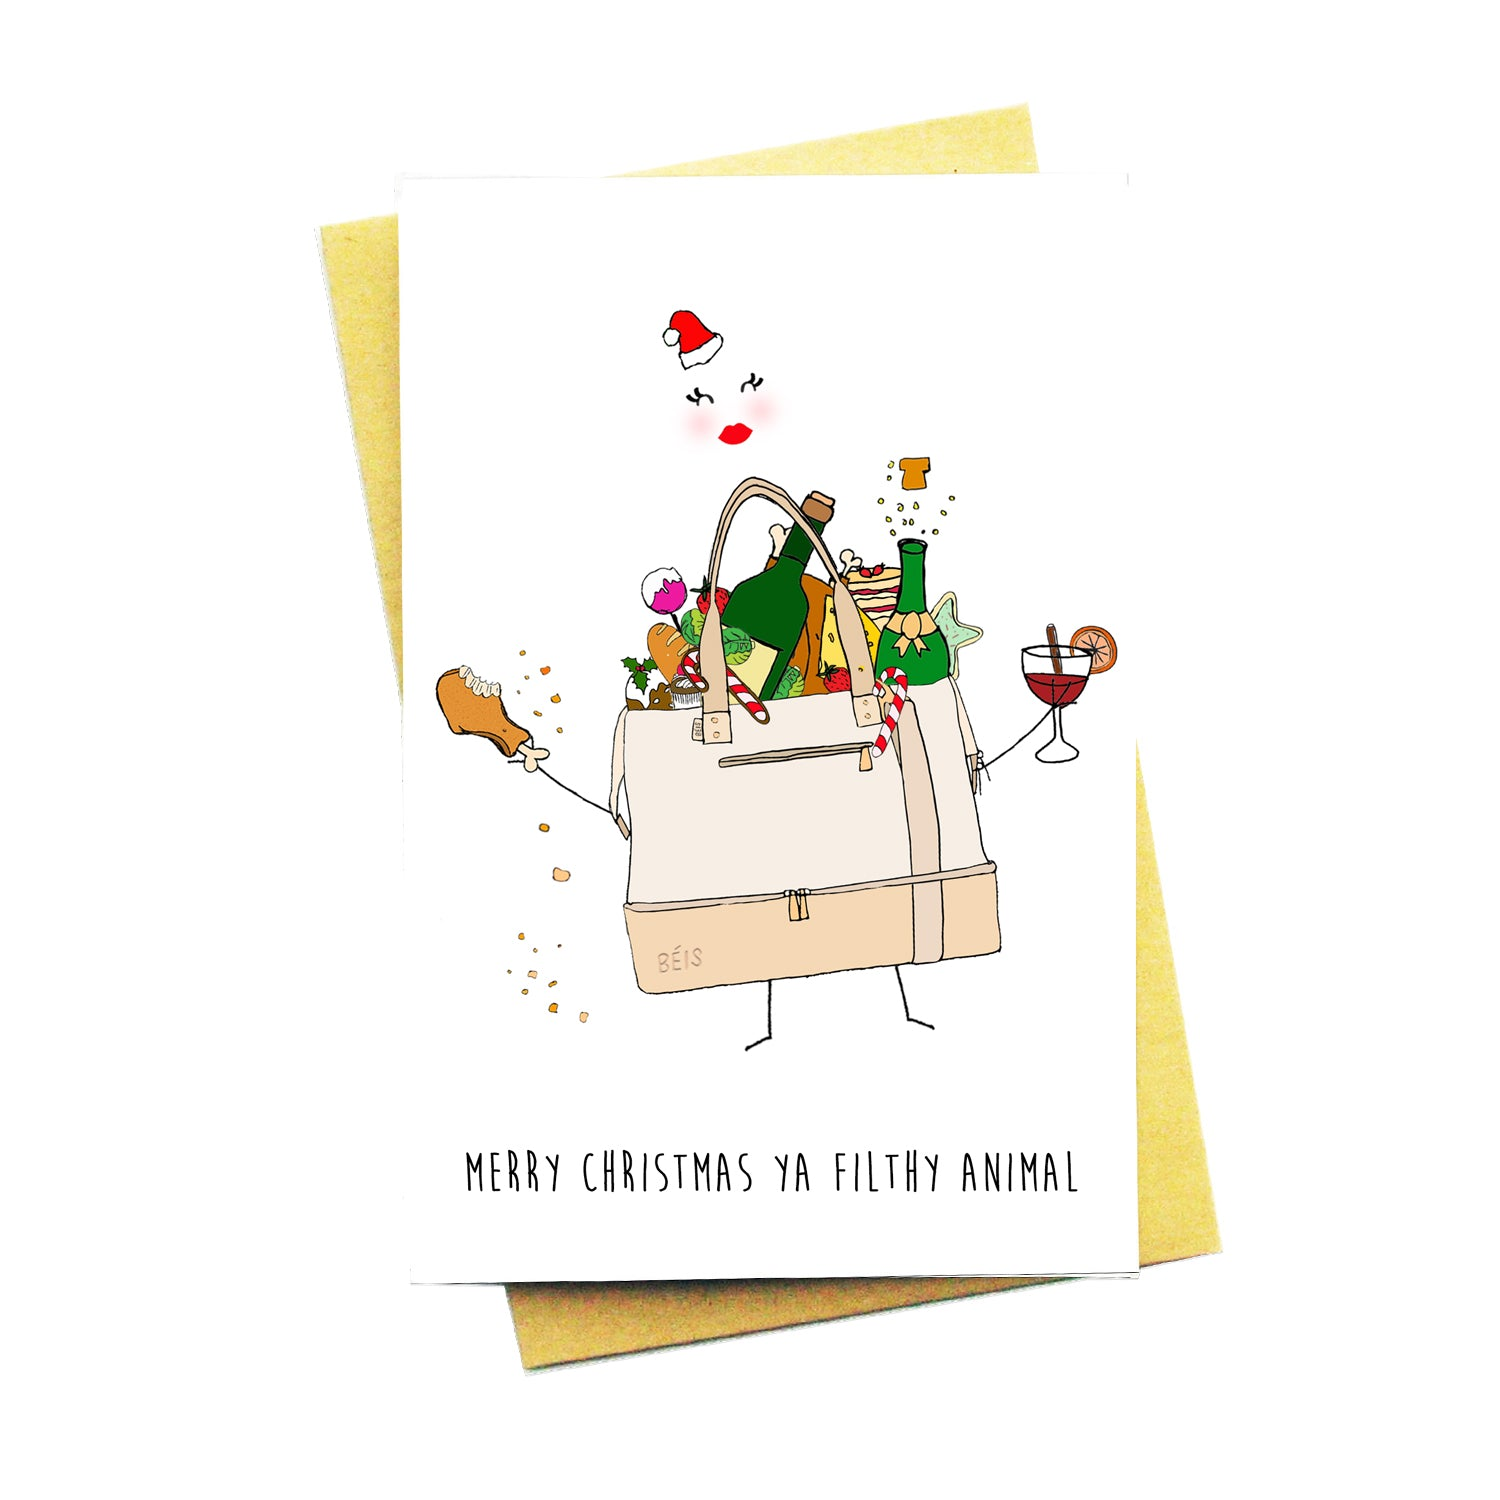 Holiday cards and content for Shay Mithchell